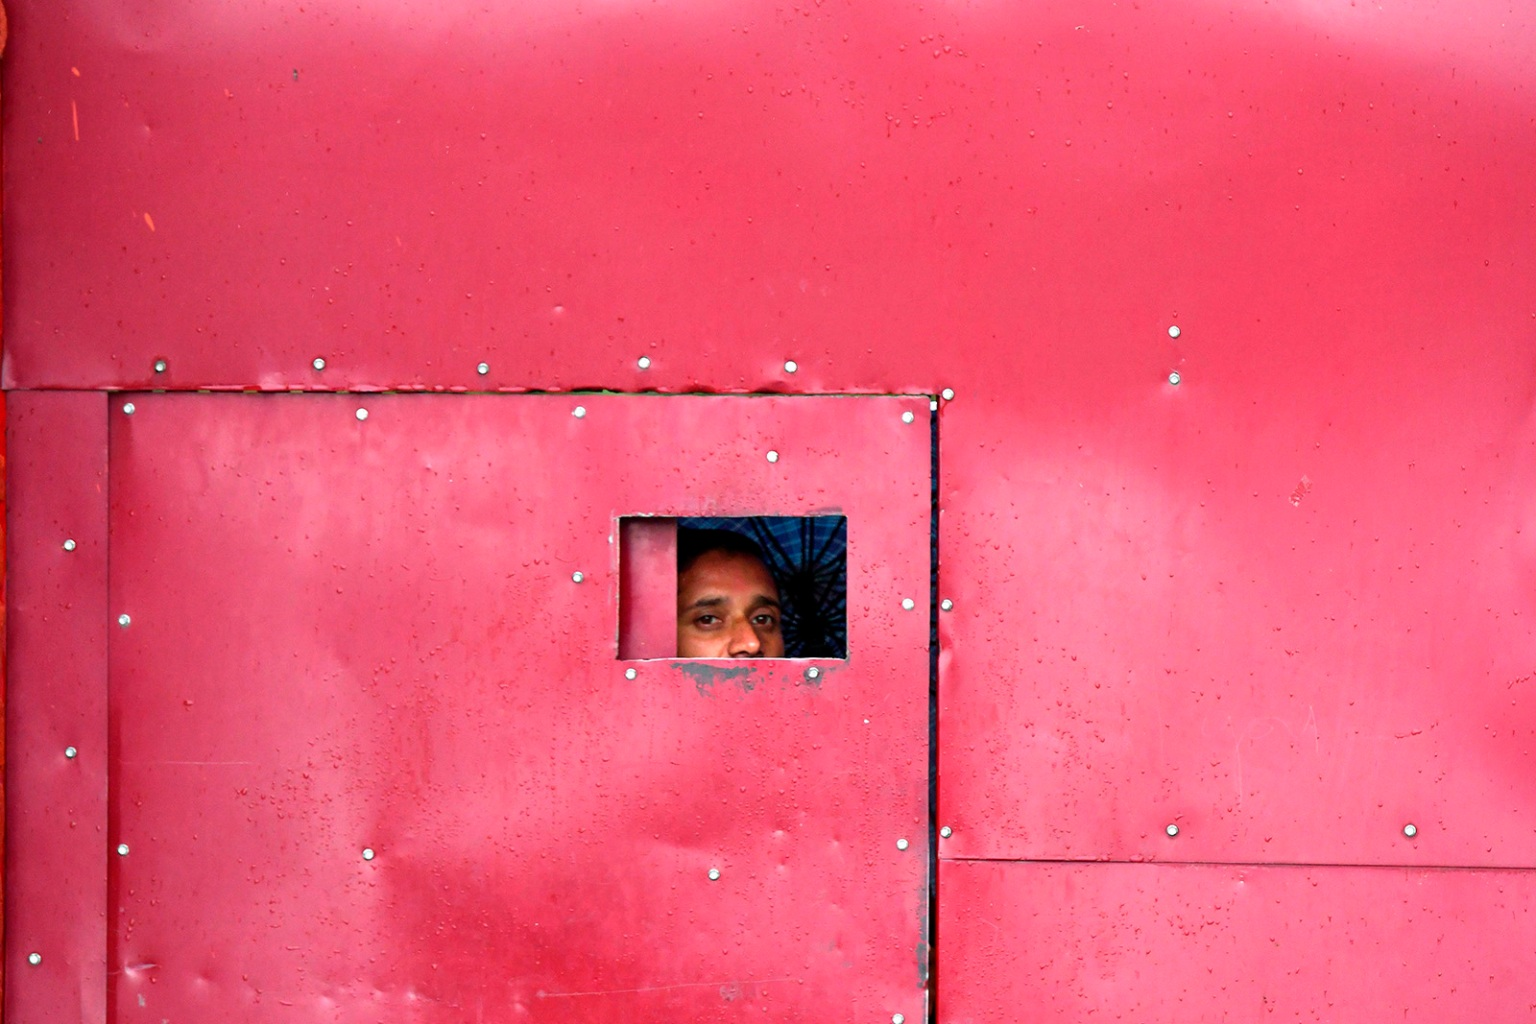 A worker looks through the gate of a closed school in Srinagar in Jammu and Kashmir on Aug. 19. PUNIT PARANJPE/AFP/Getty Images